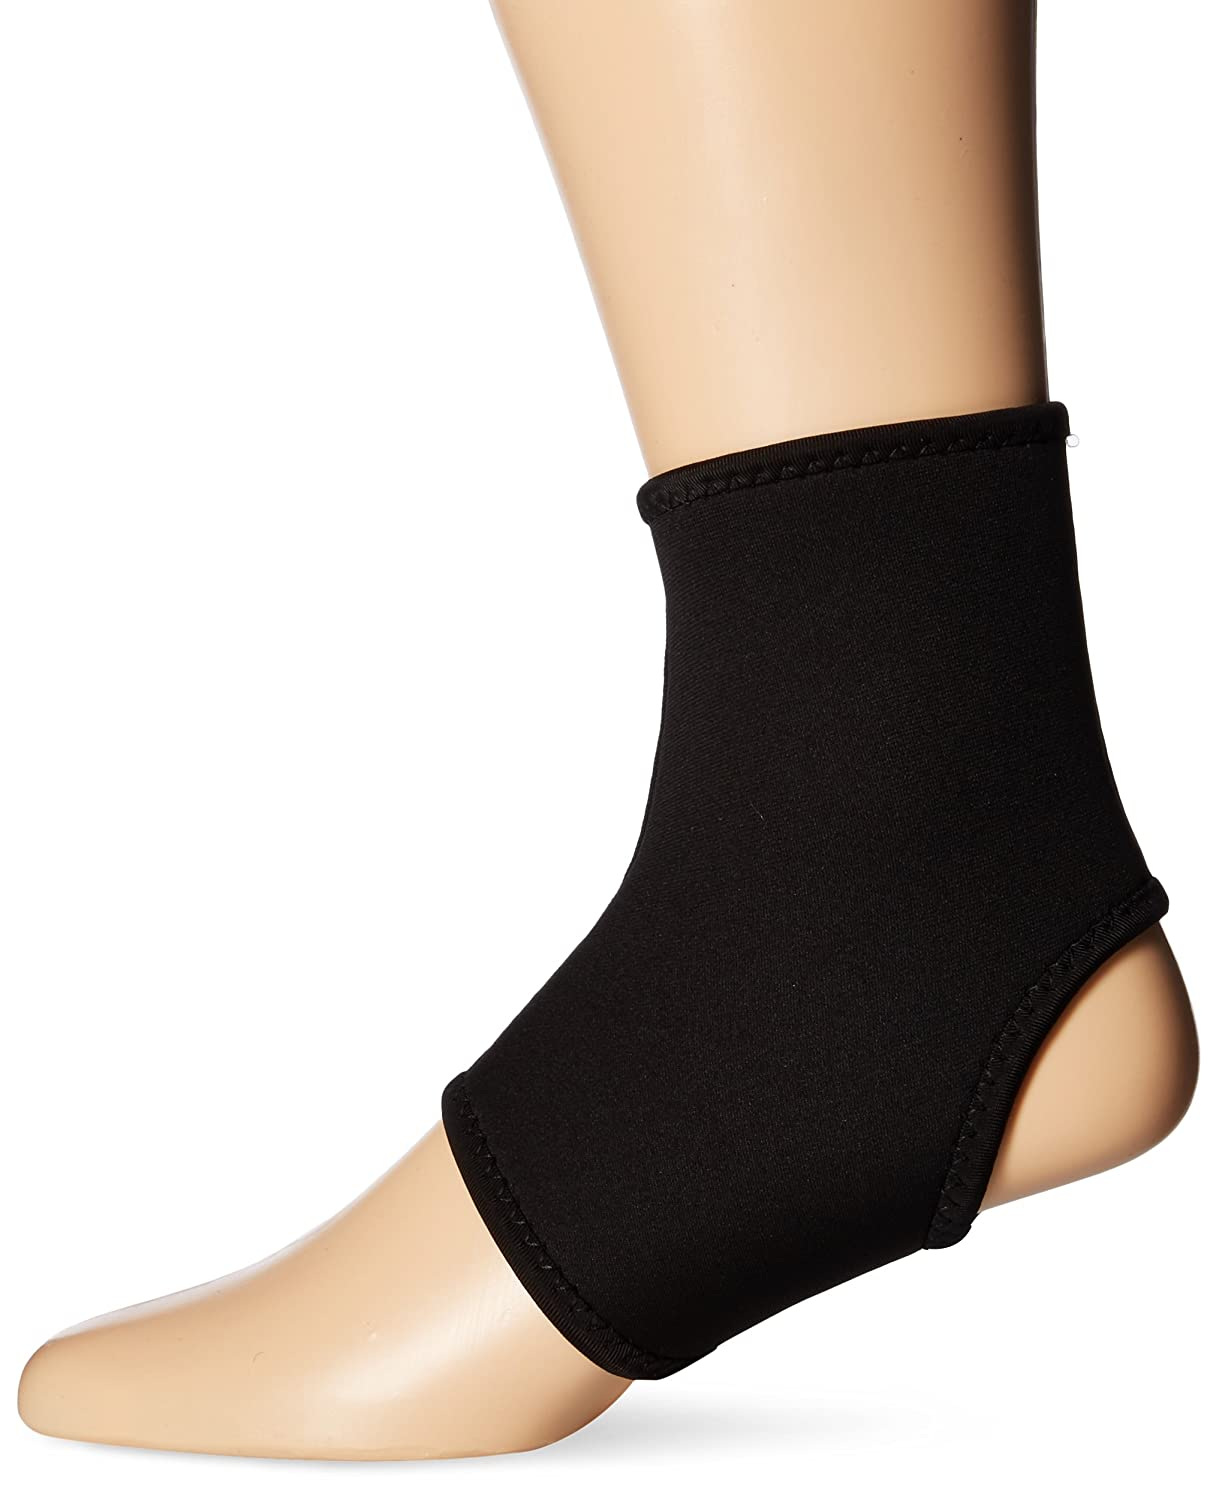 Total Copper Infused Embedded Dual Ankle Supports 7 Count Black